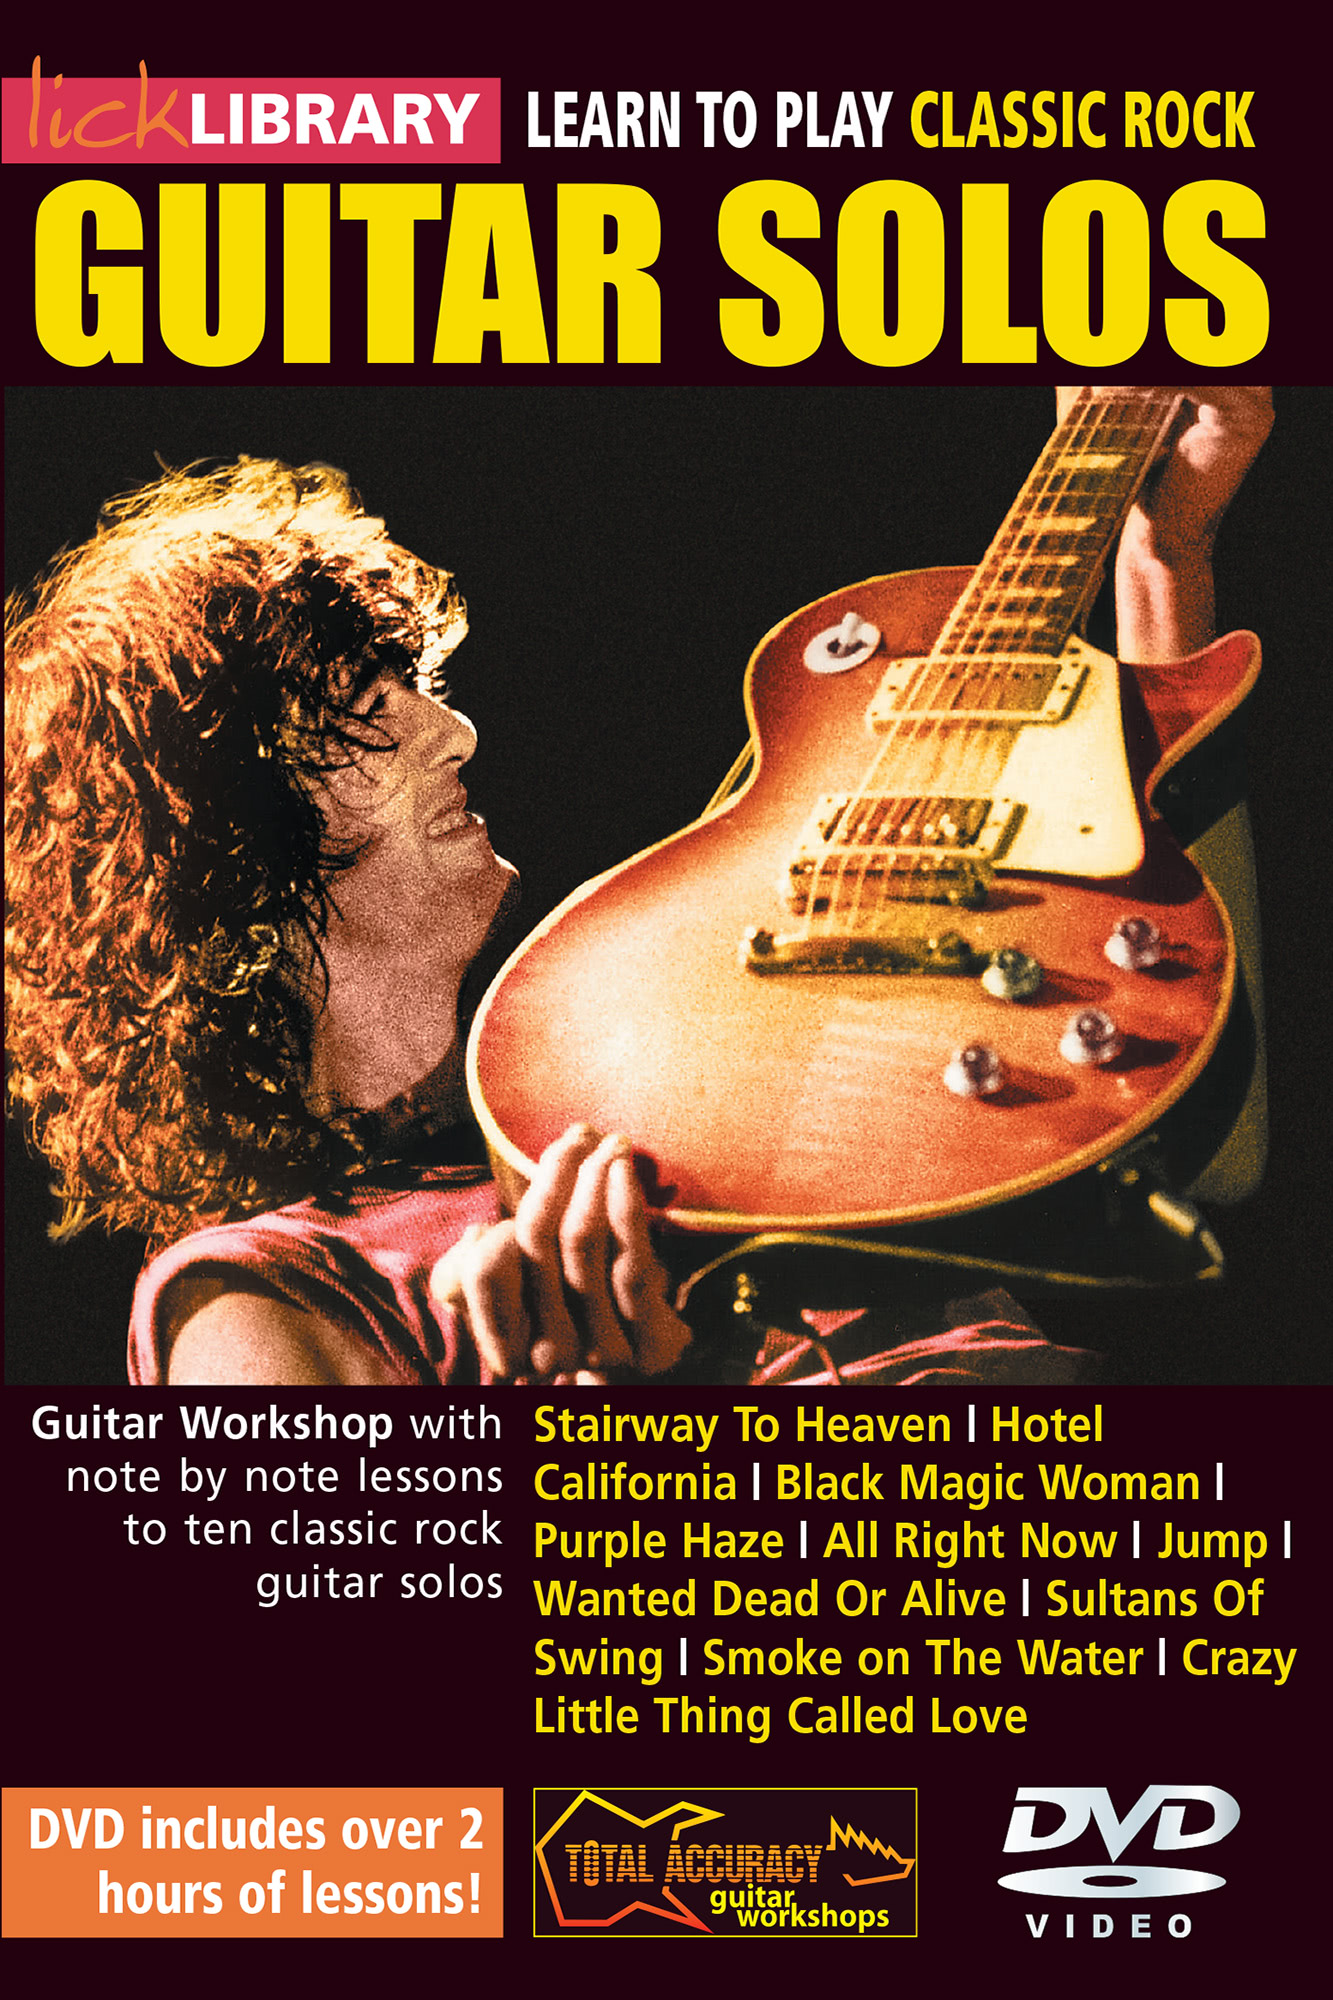 Learn To Play Classic Rock Guitar Solos